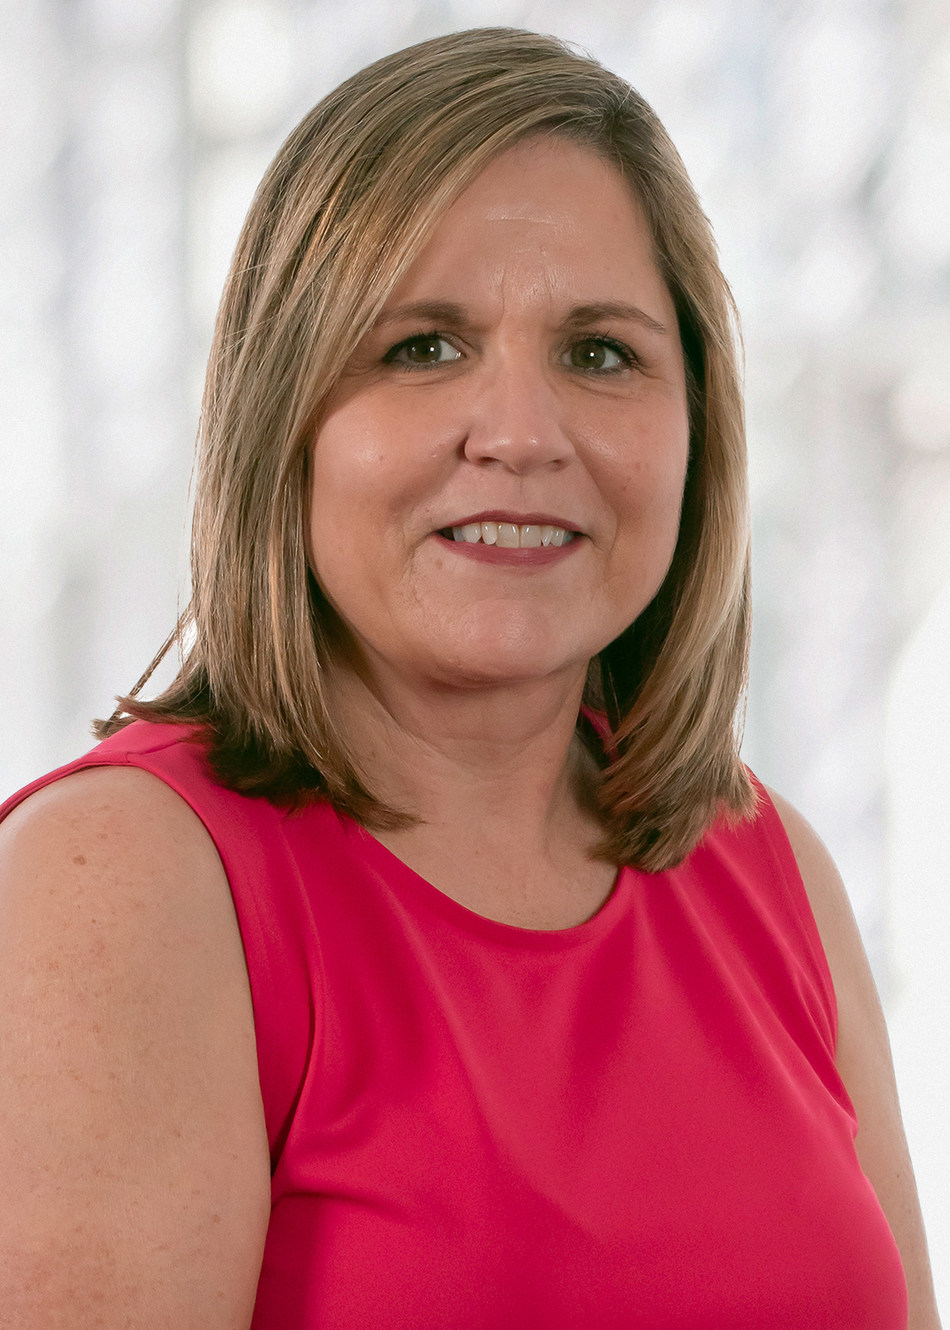 Michelle Tomlinson-Phelan, D.O., a family physician in East Brunswick, N.J., joins the MDVIP network to deliver more personalized primary care.